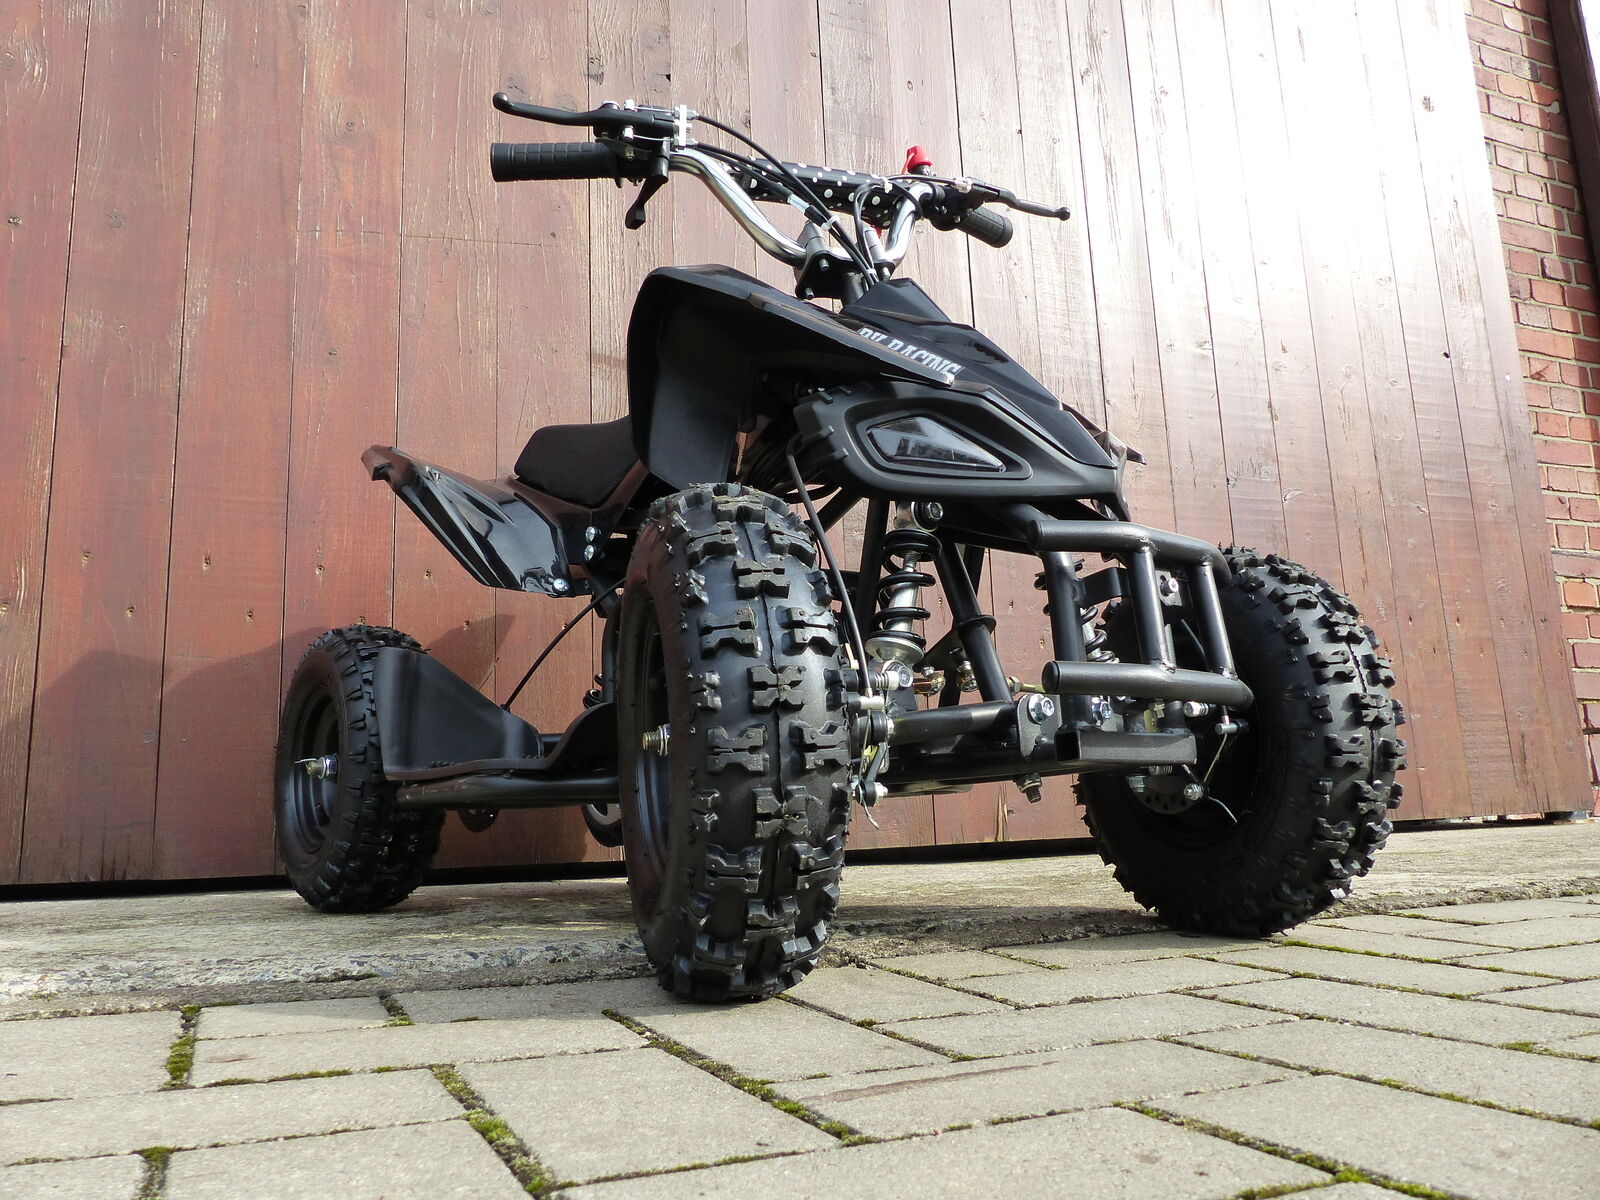 RV-Racing Quad Mini Kinder ATV 6 Zoll 49cc 2Takt Pocketquad Kinderquad Schwarz